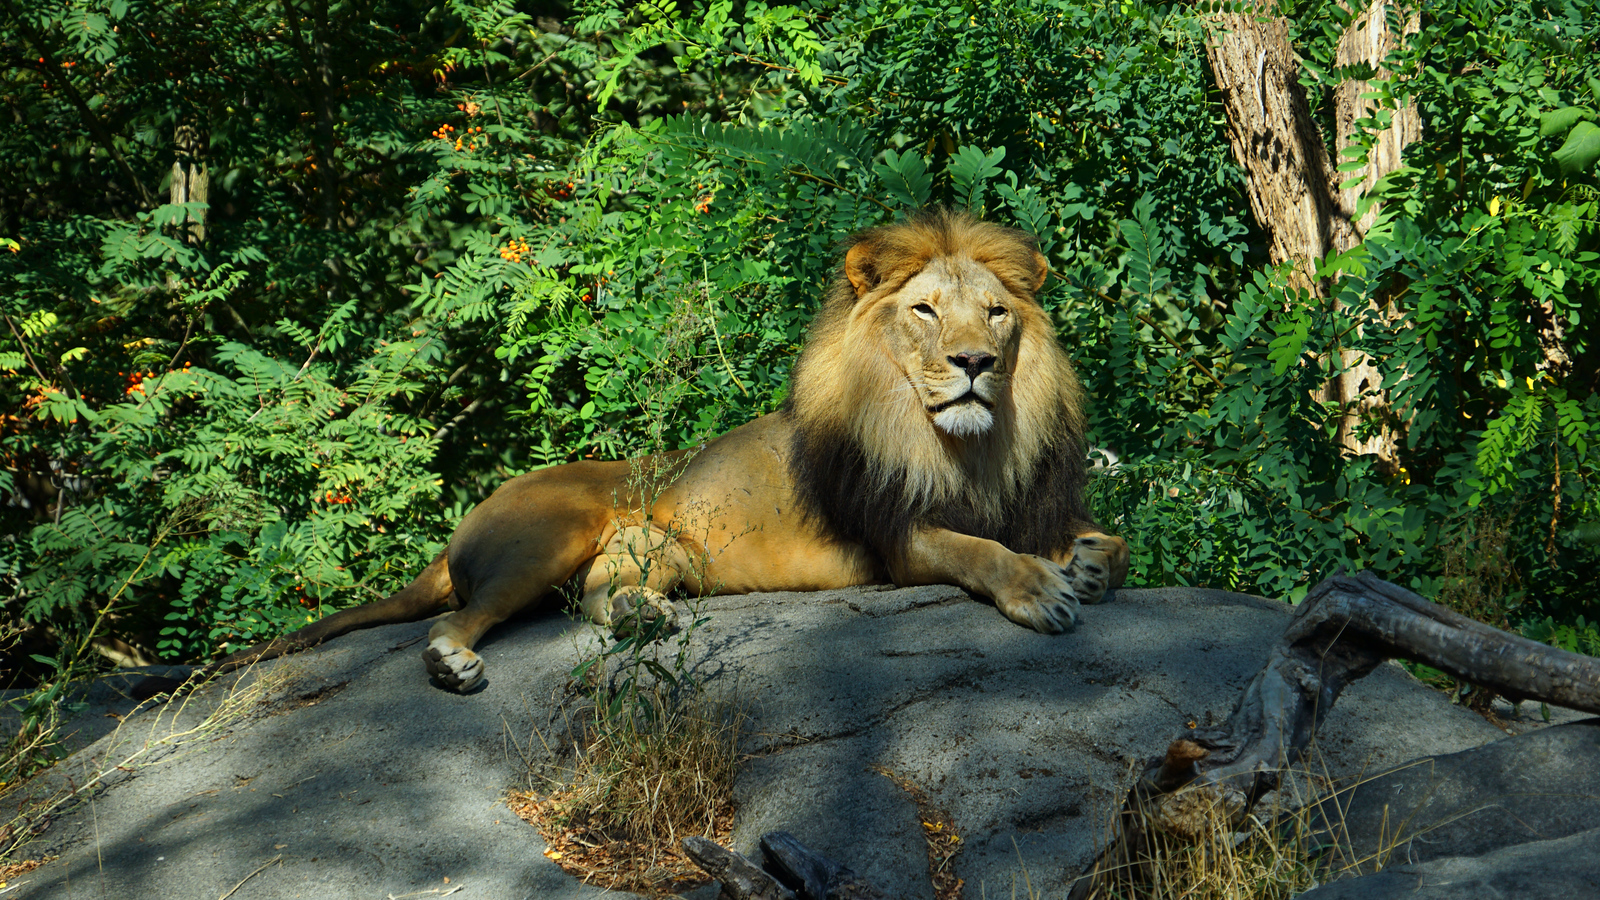 His Majesty